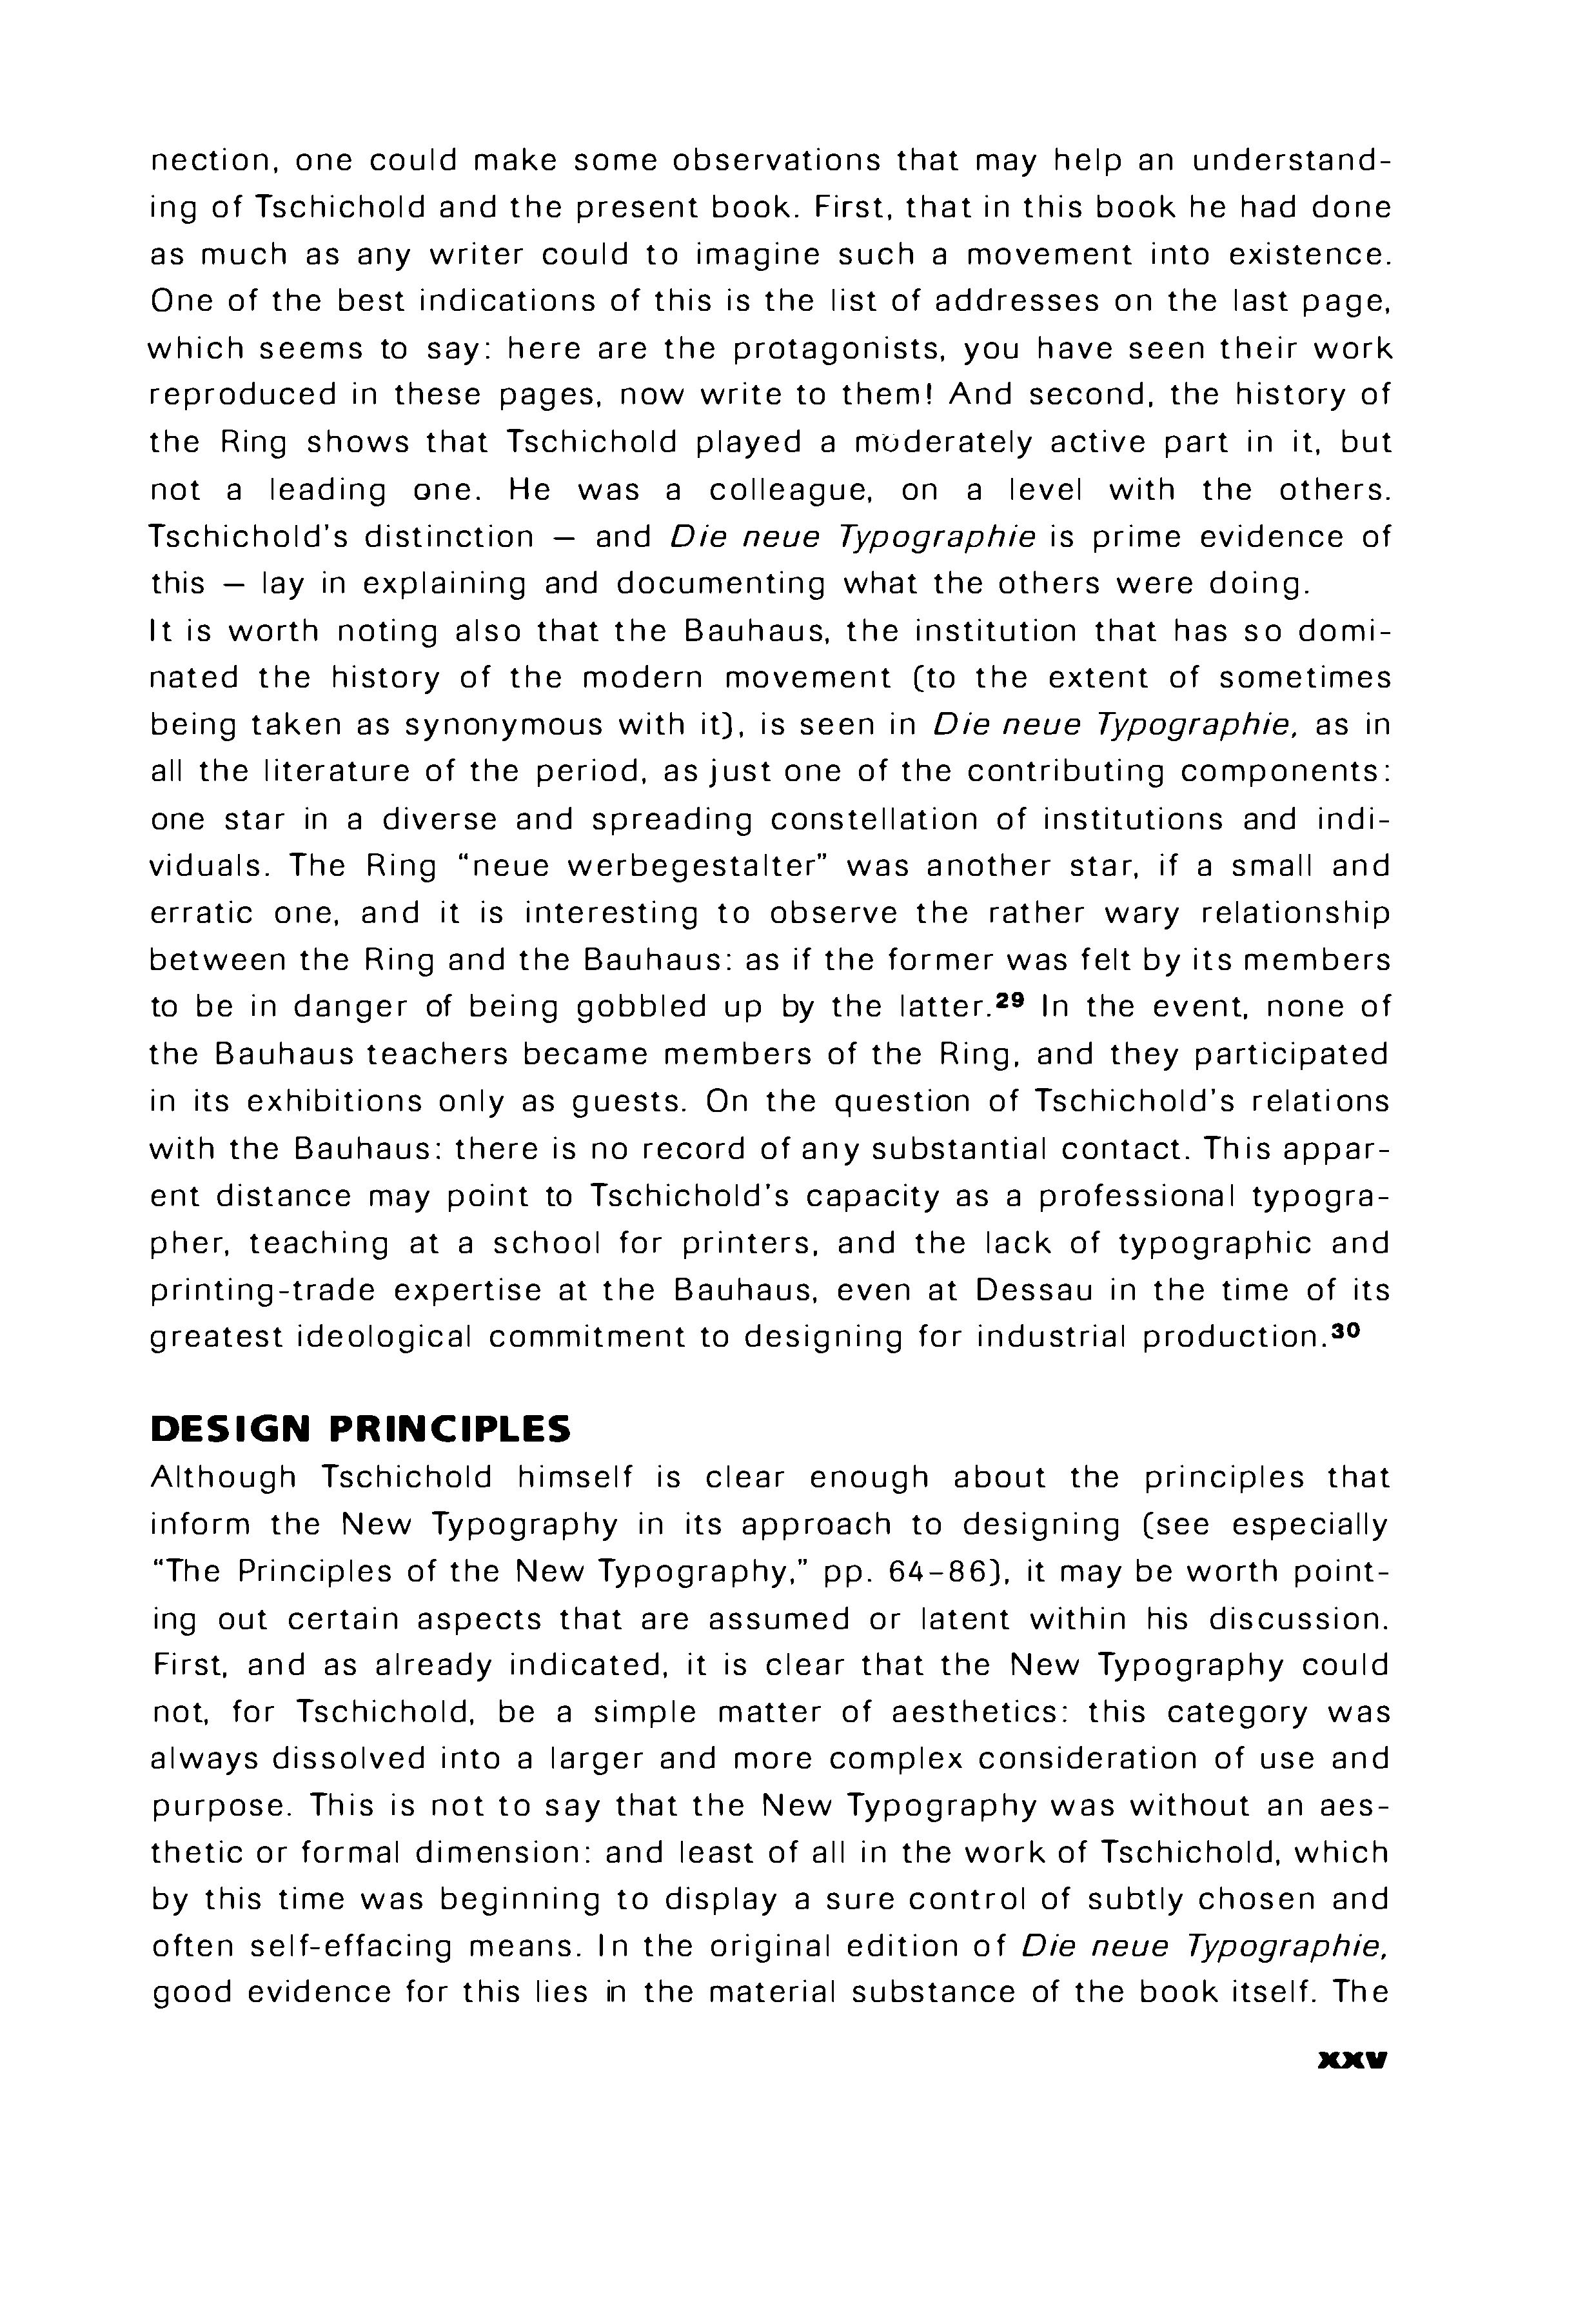 jan-tschichold-the-new-typography-1928_page_025